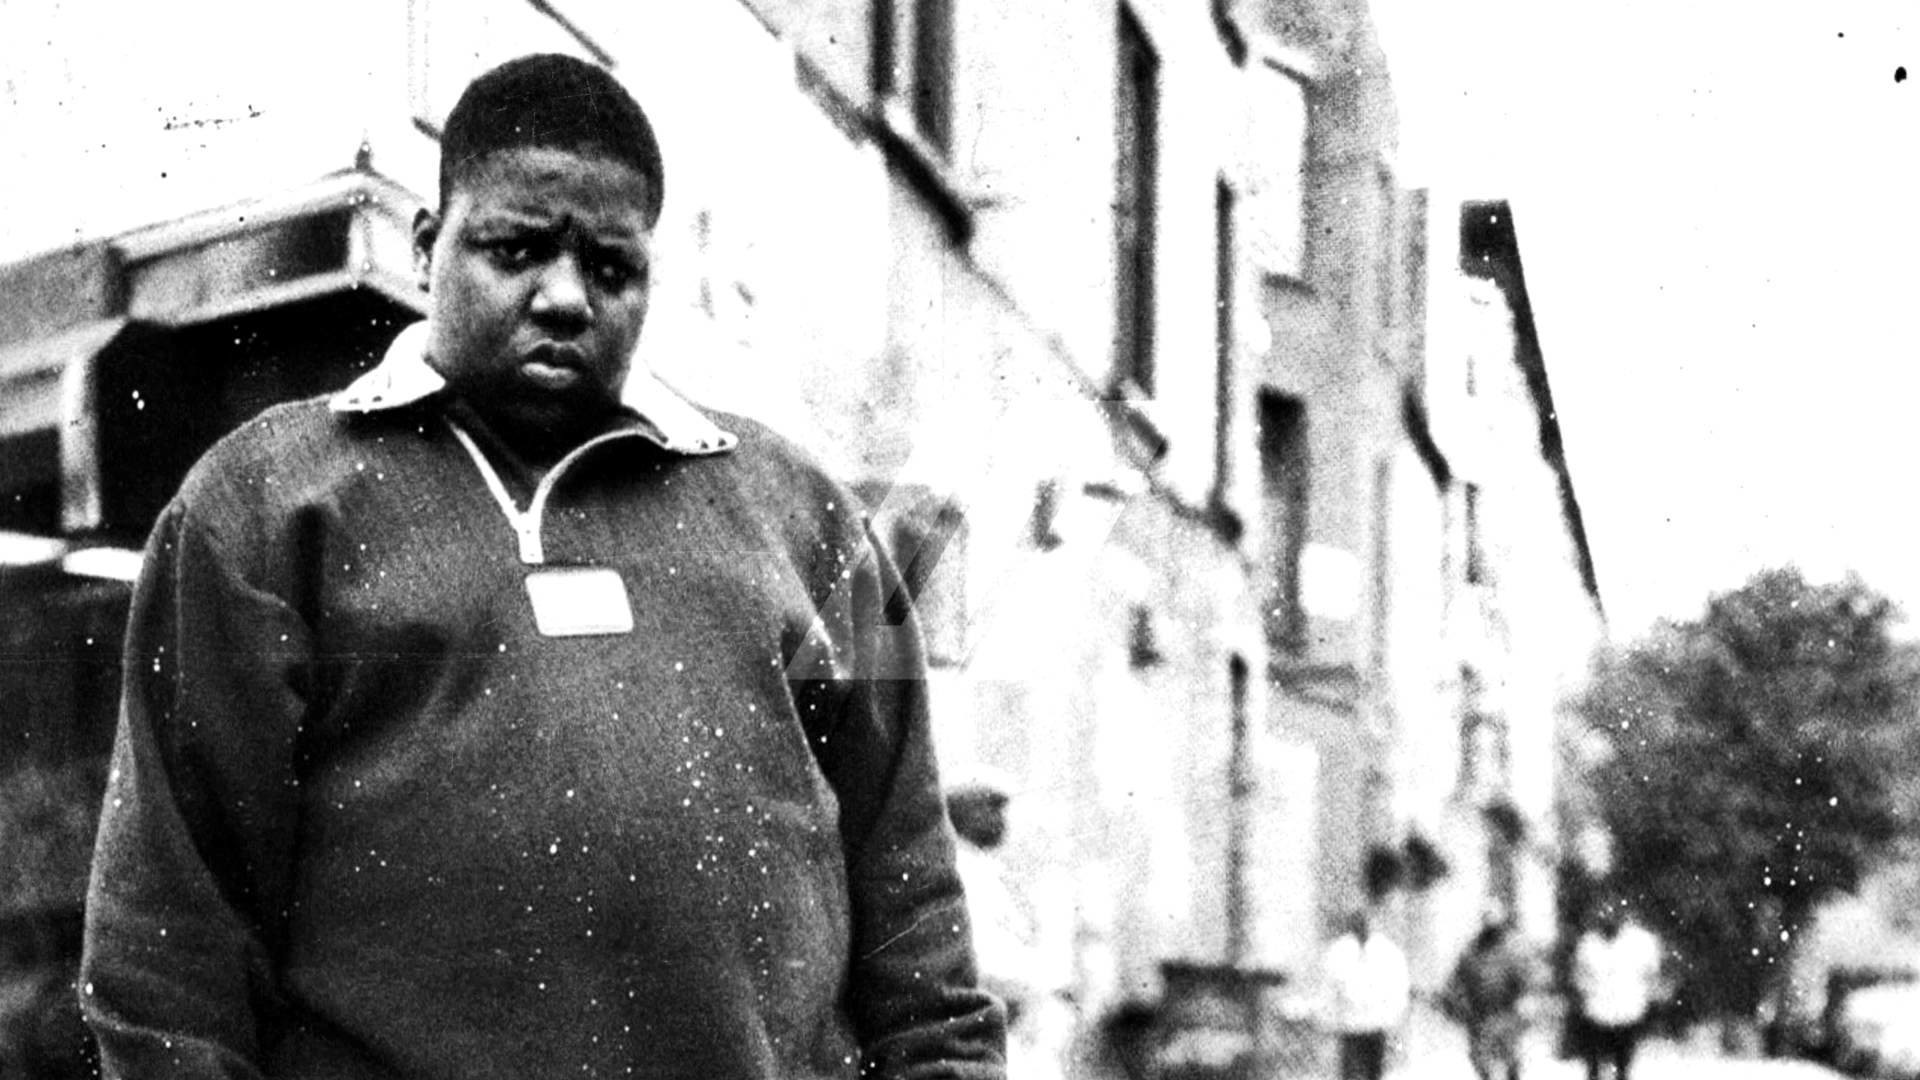 The Notorious B.I.G Wallpapers HD